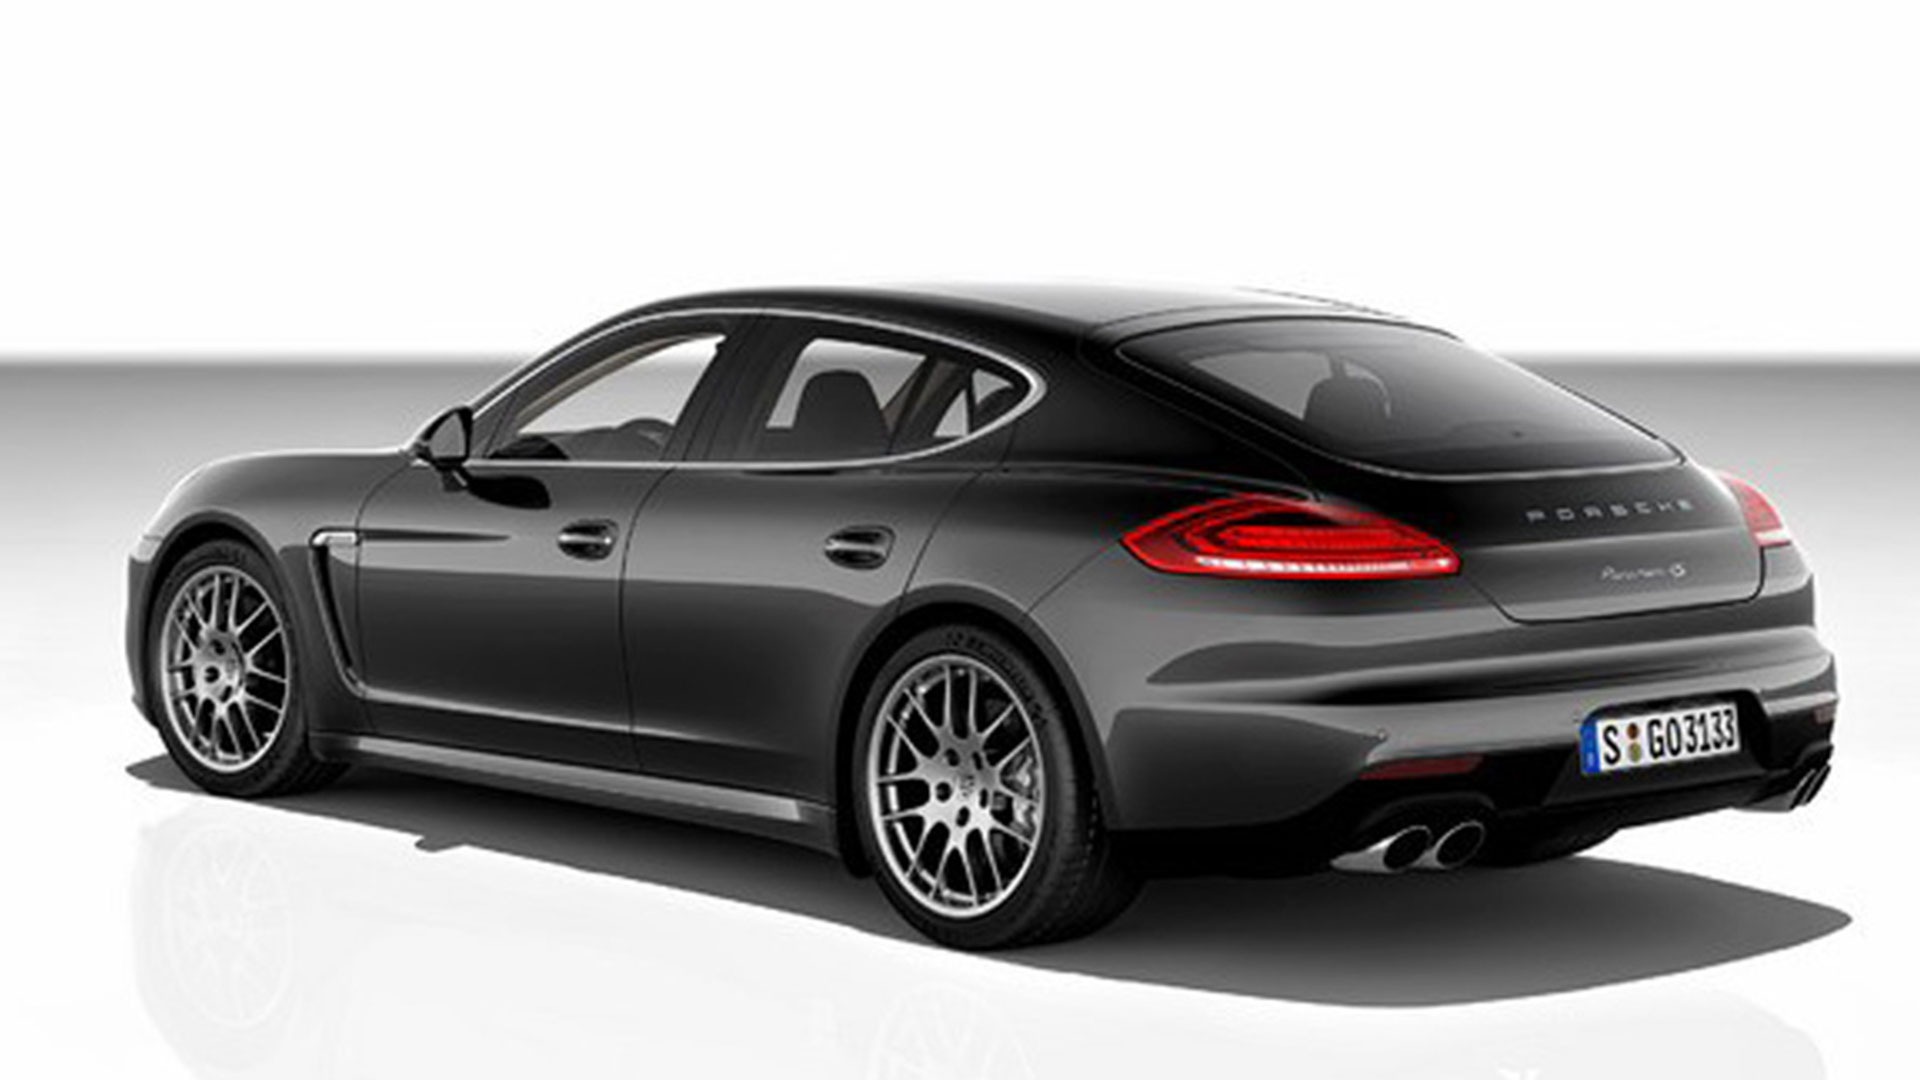 2015 Panamera Picture Autos Post